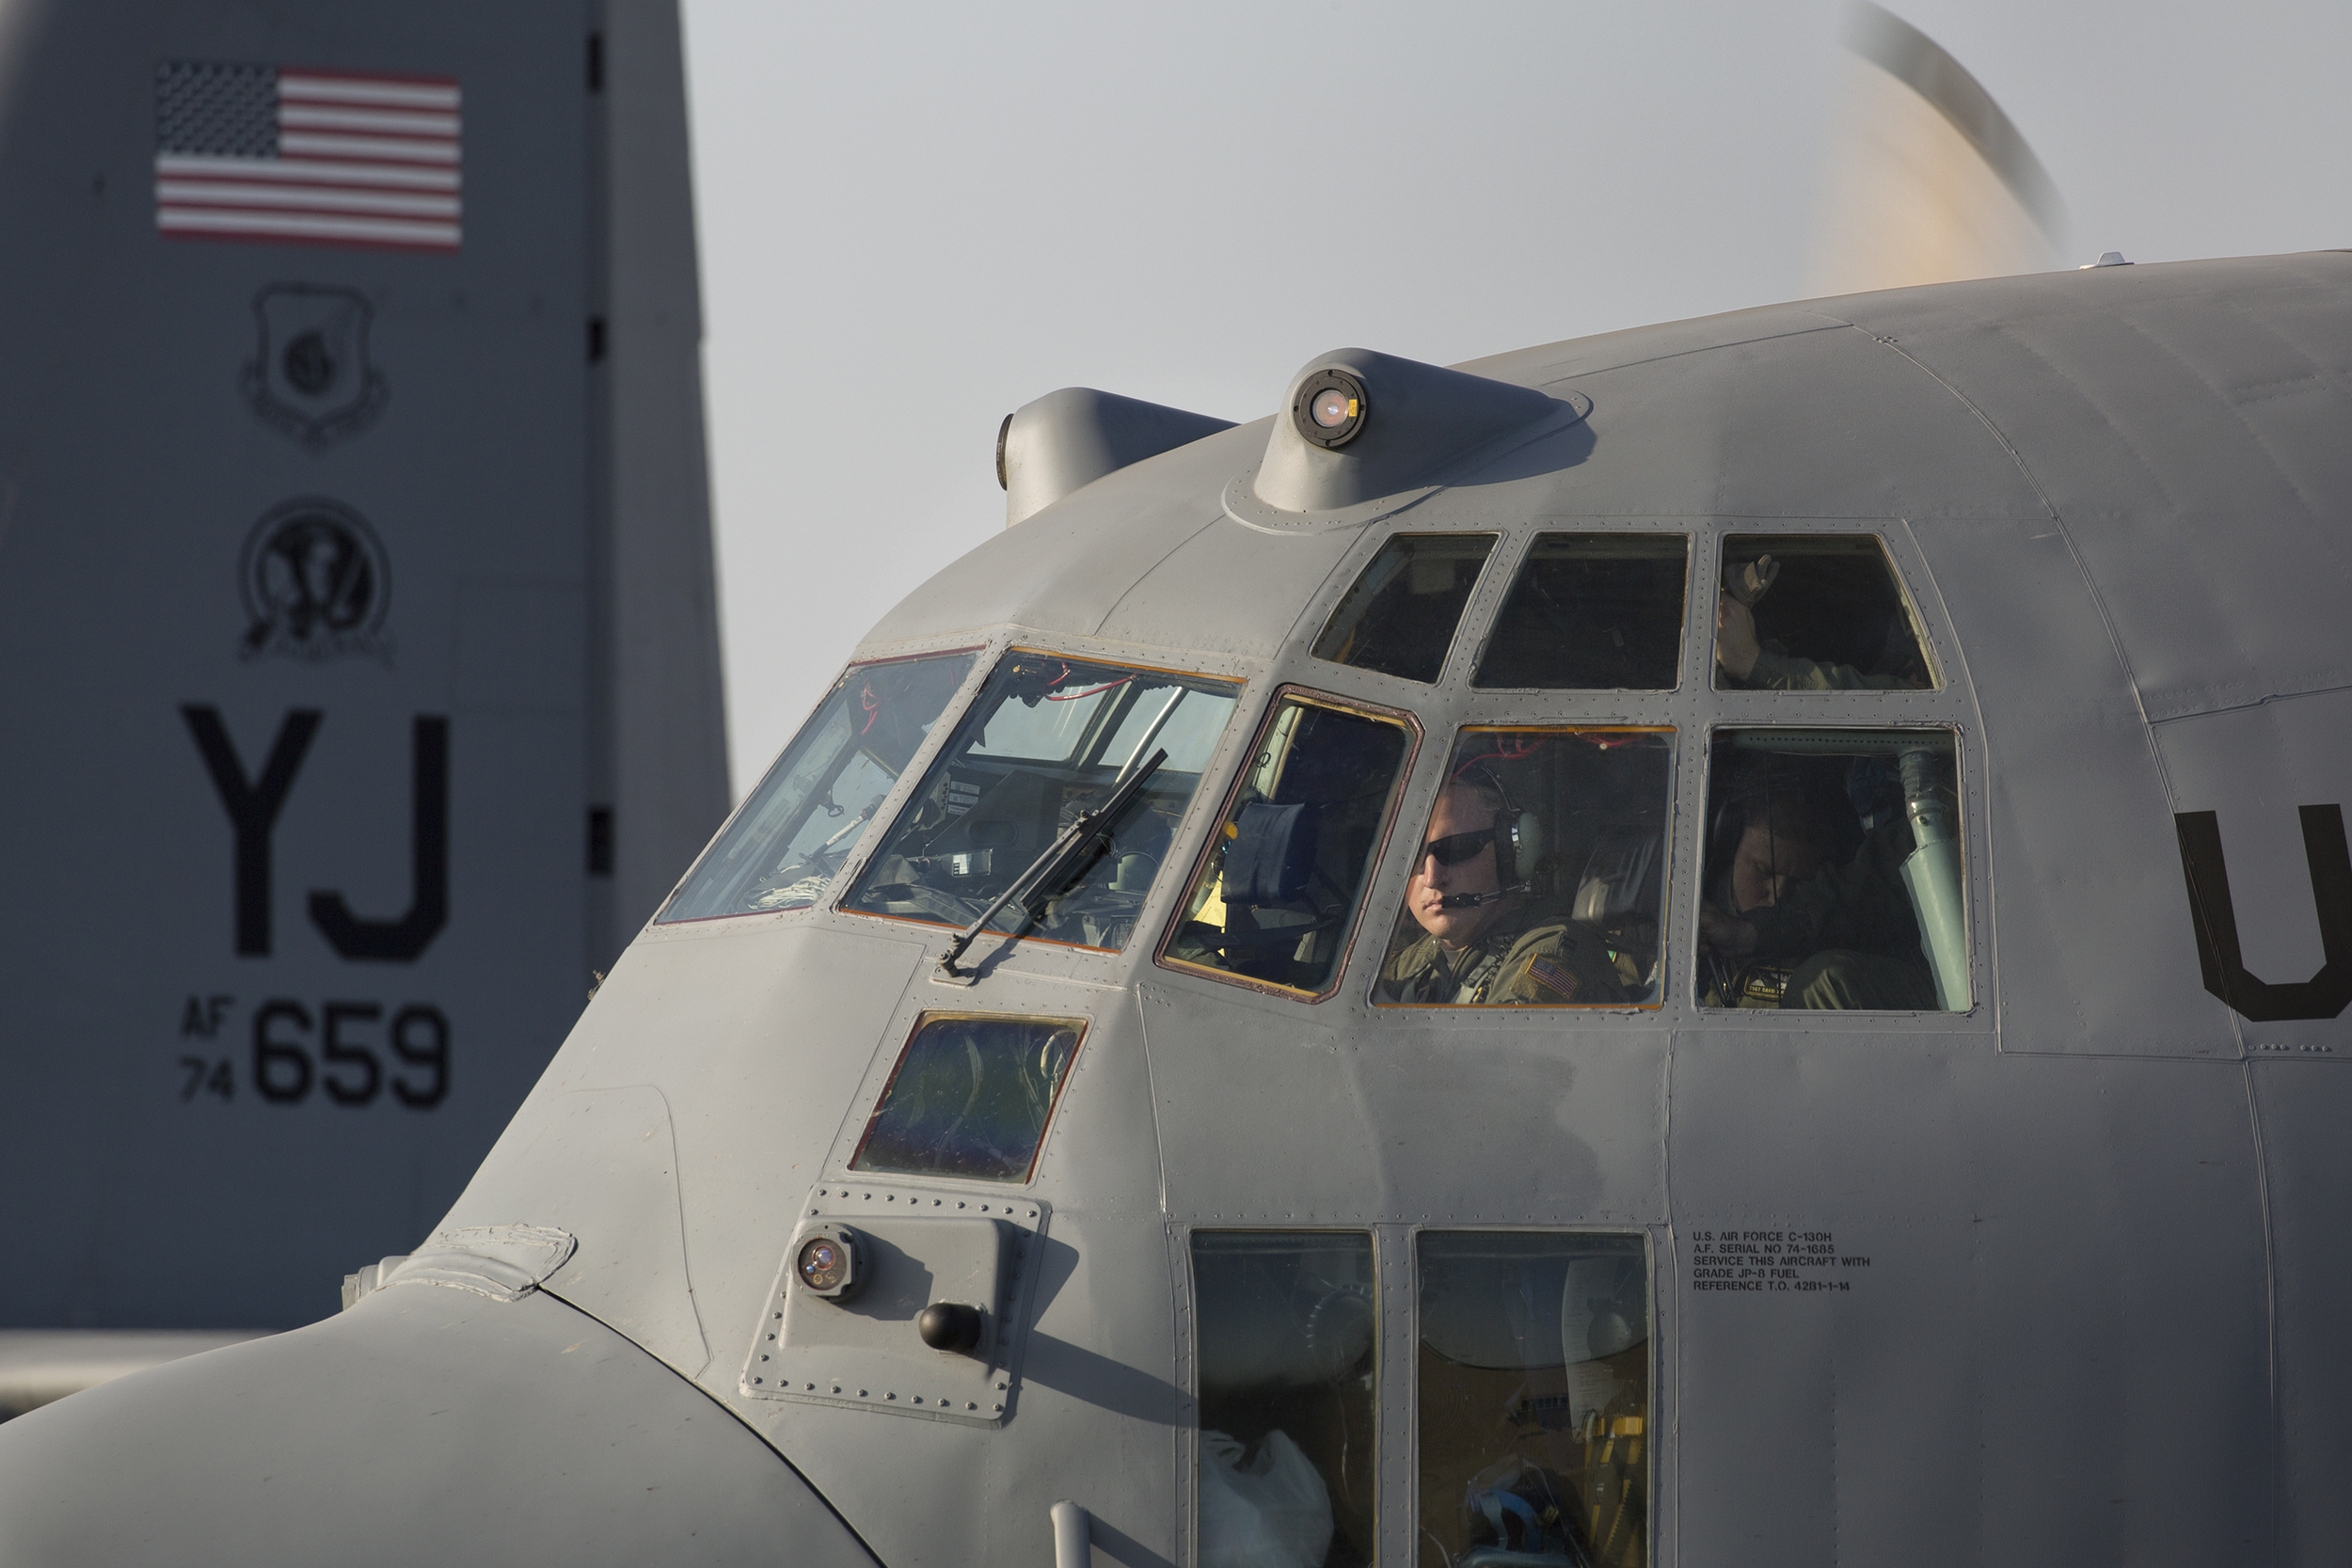 Capt. Christopher Weaver, 36th Mobility Response Squadron pilot, conducts preflight checks at Yokota Air Base, Japan, May 5, 2015. Airmen departed Yokota to support the U.S. Agency of International Development and the Government of Nepal. (U.S. Air Force photo by Osakabe Yasuo/Released)